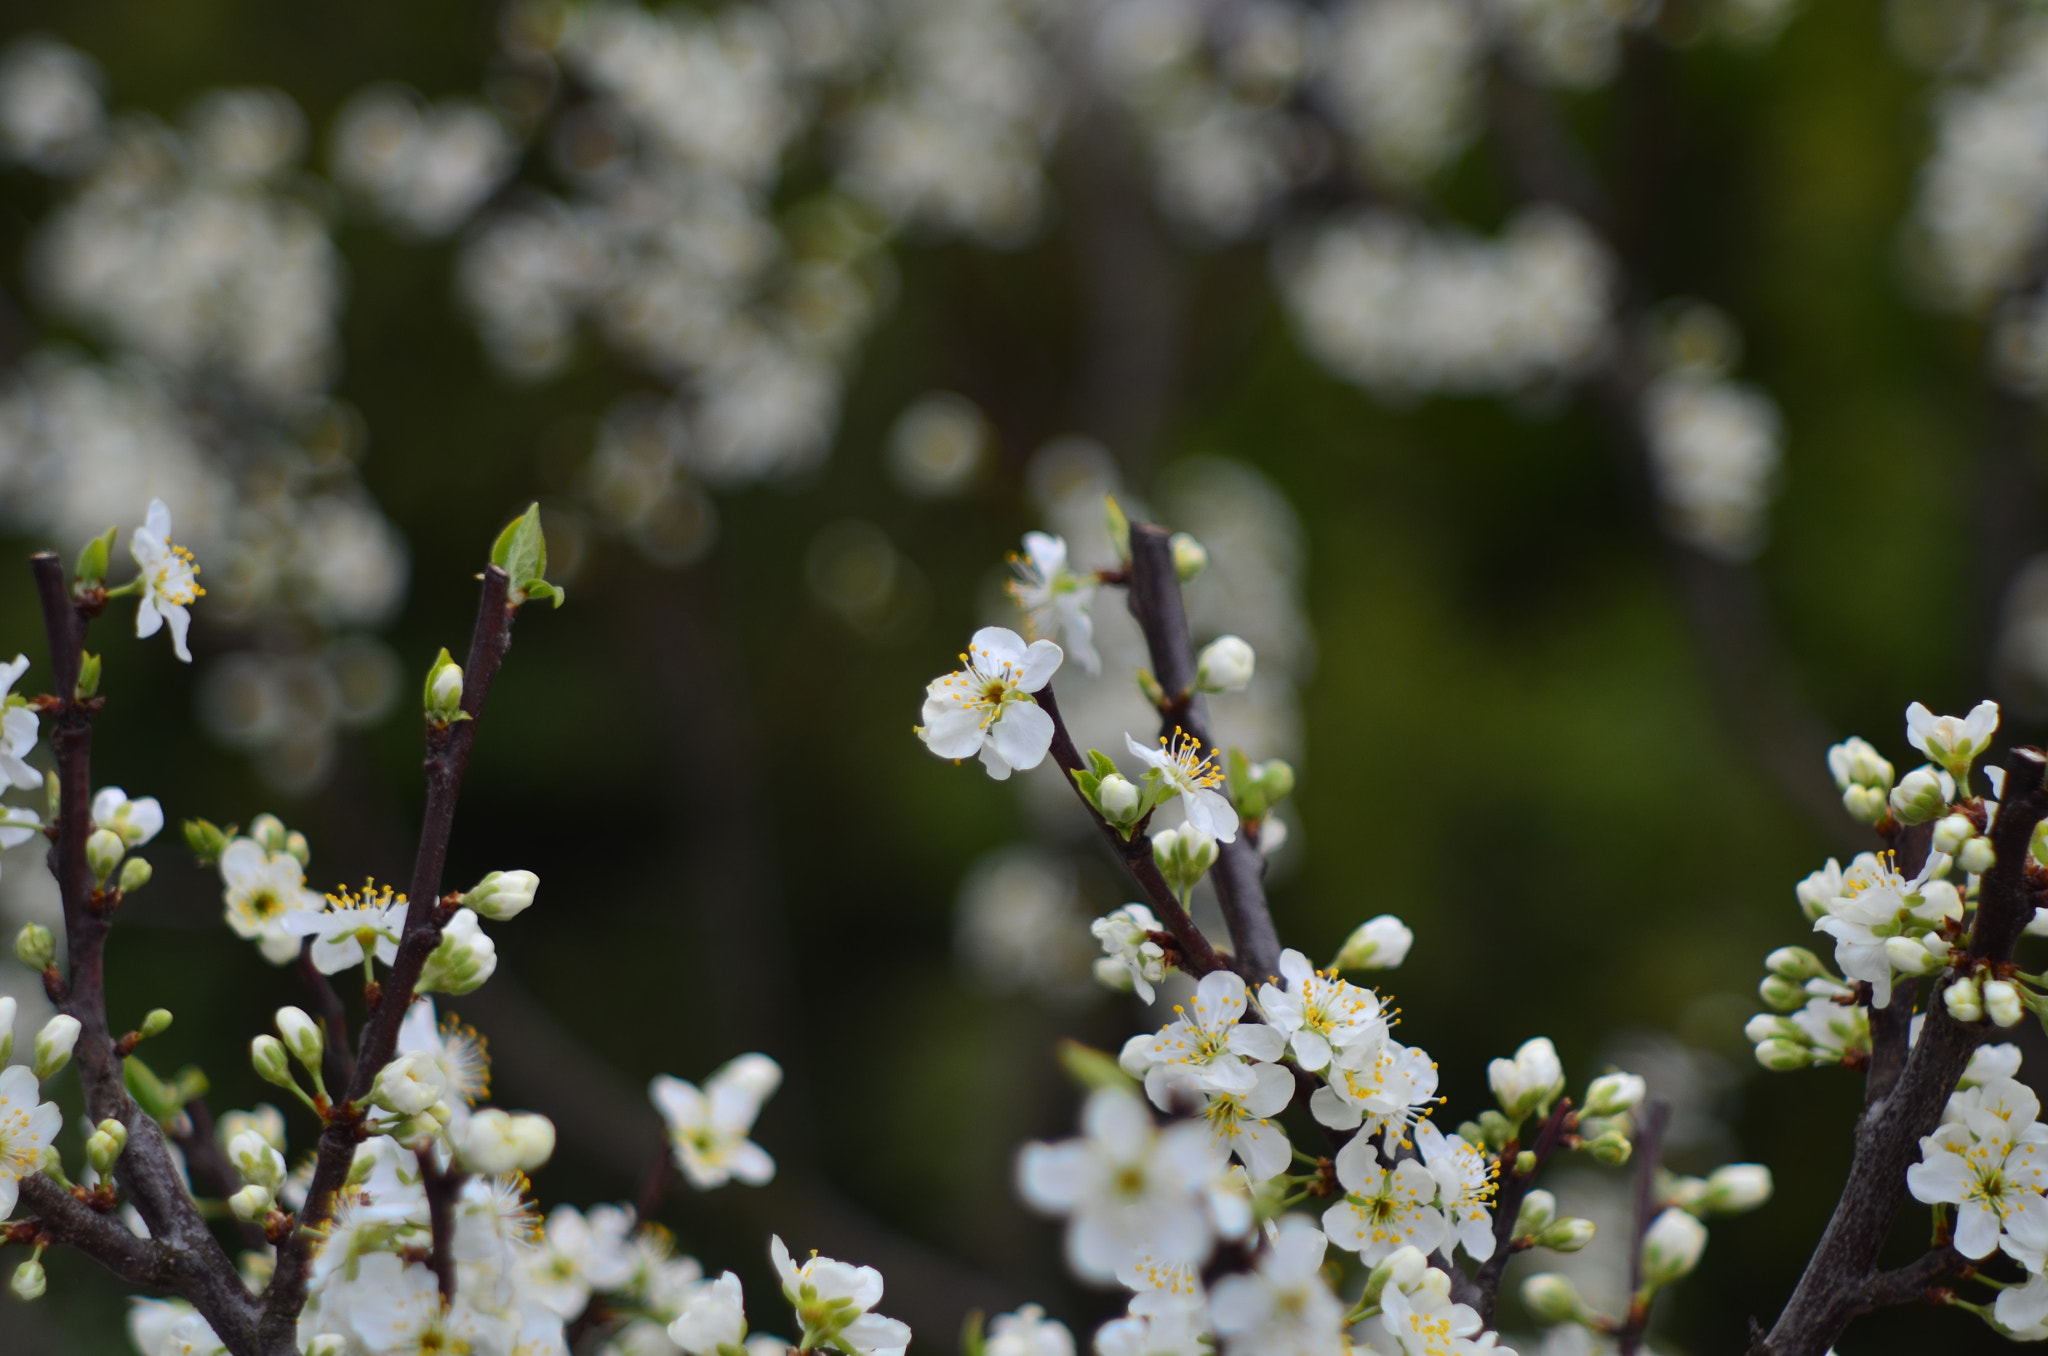 Photograph Plum blossom I by The Oal on 500px